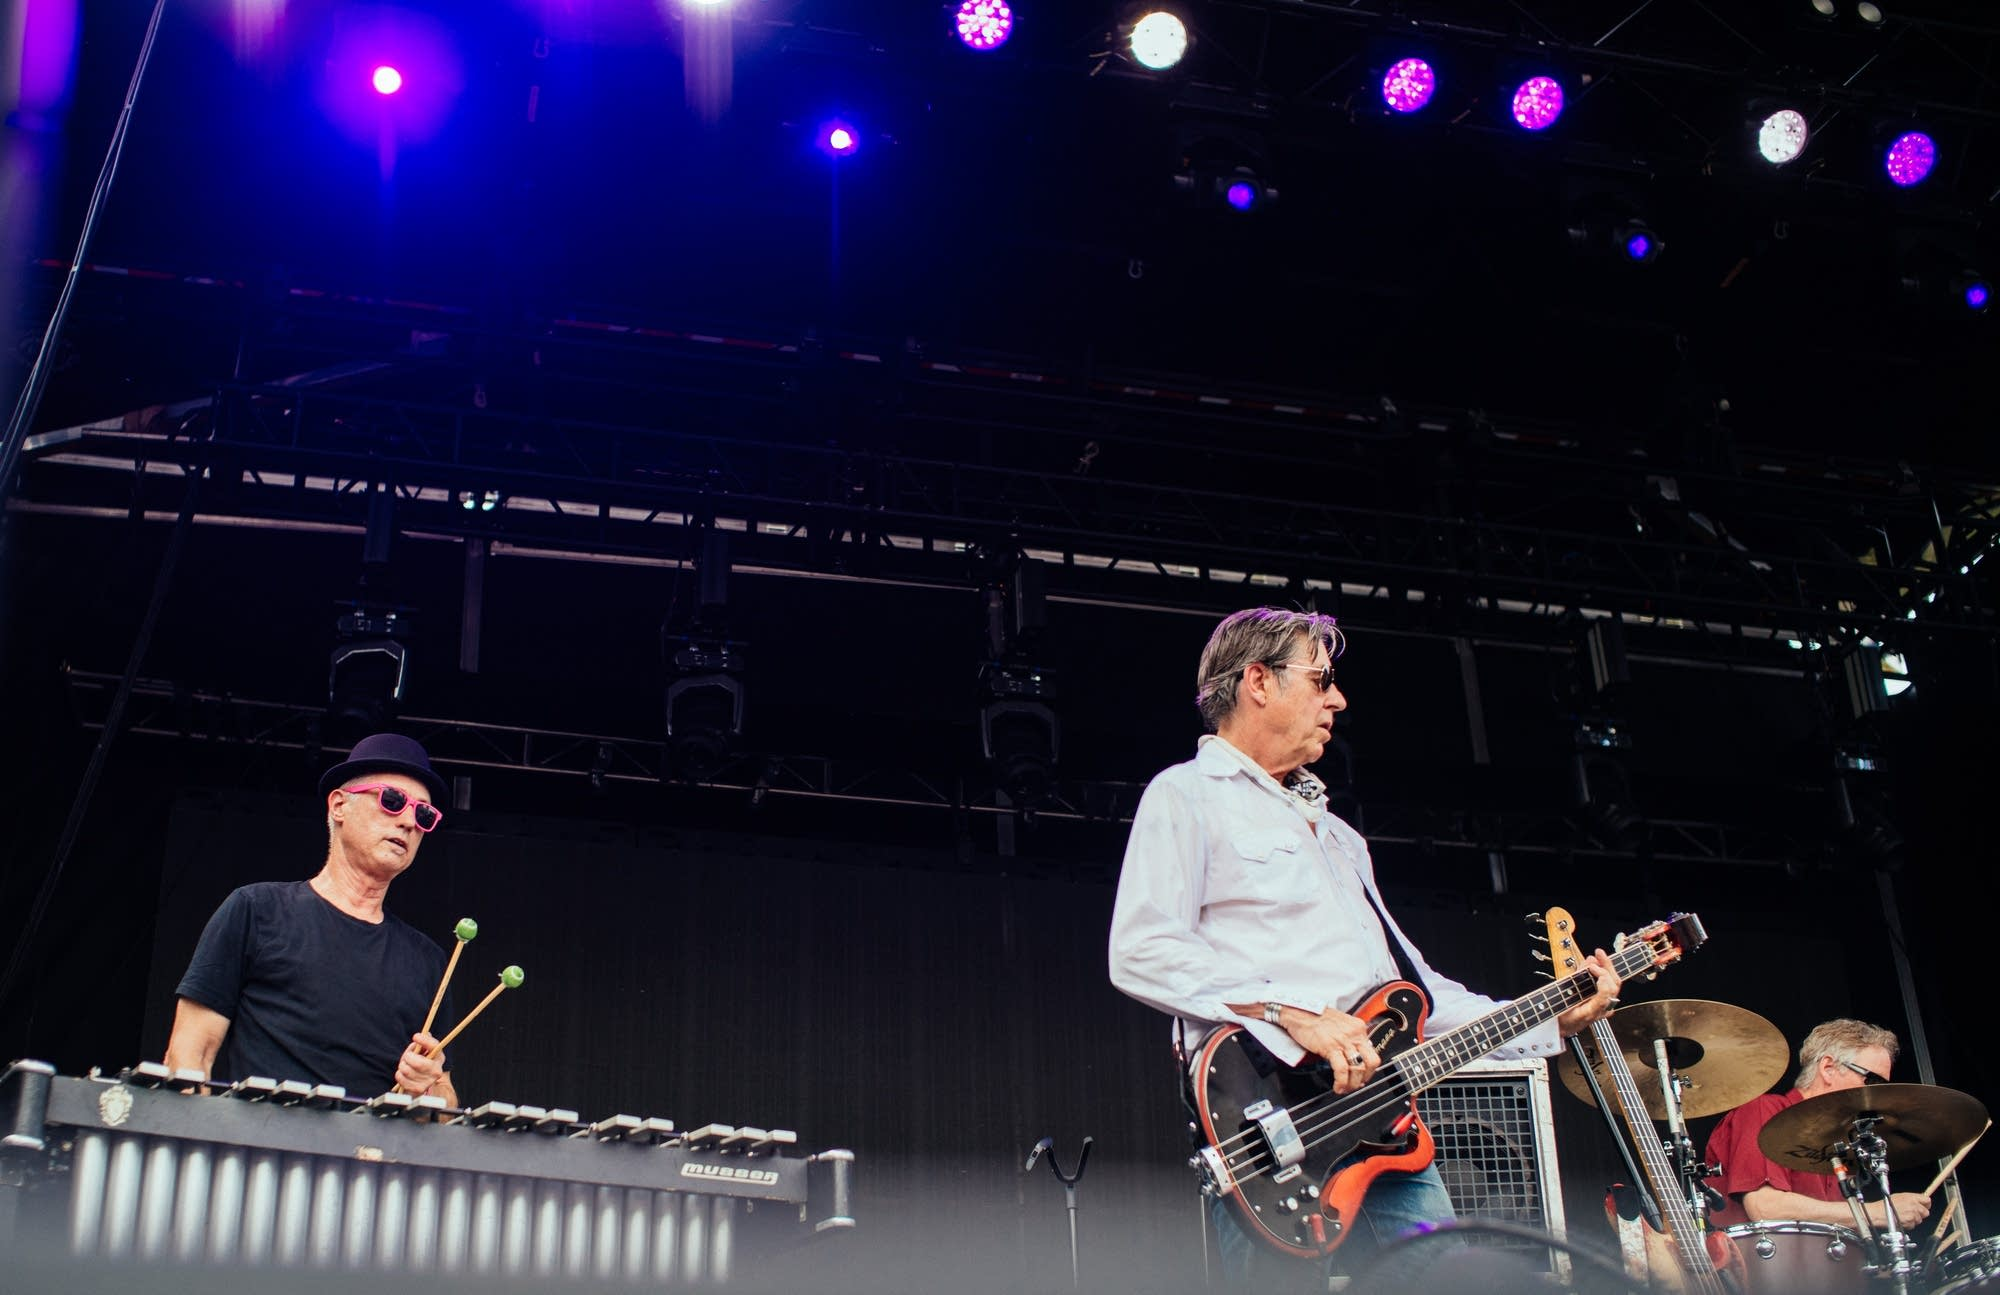 X perform at Rock the Garden 2019